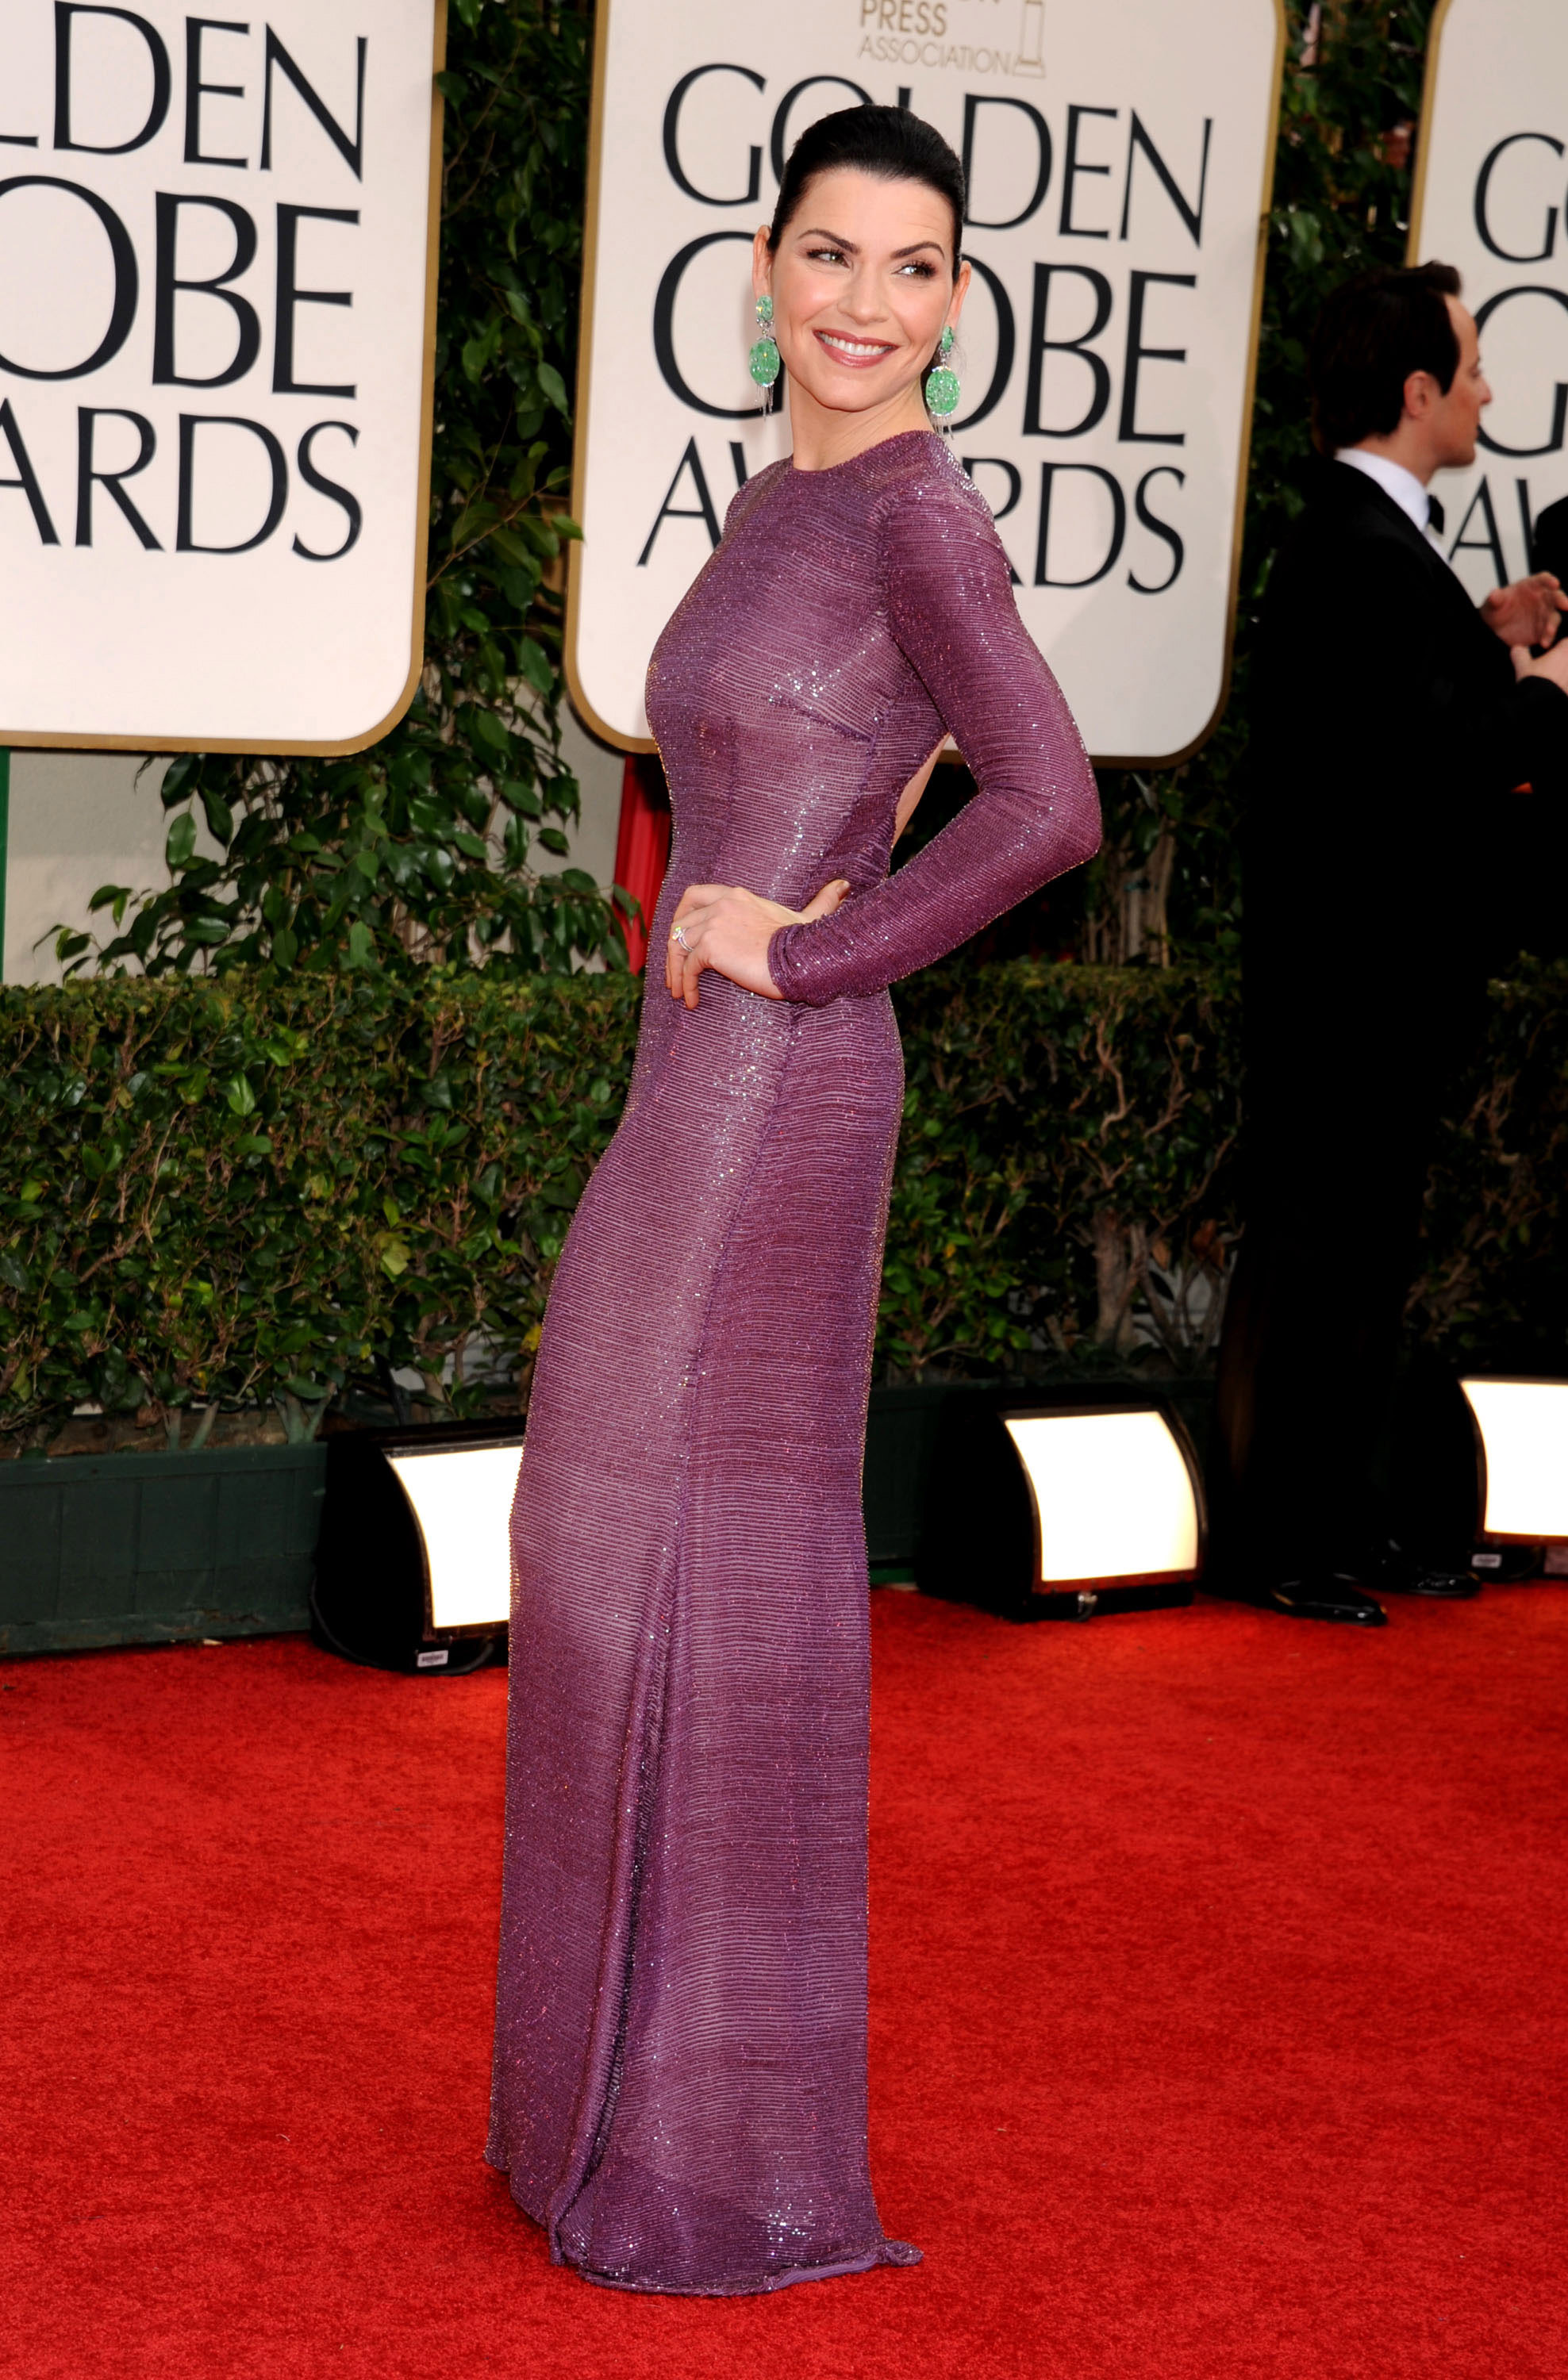 Julianna at the Golden Globes